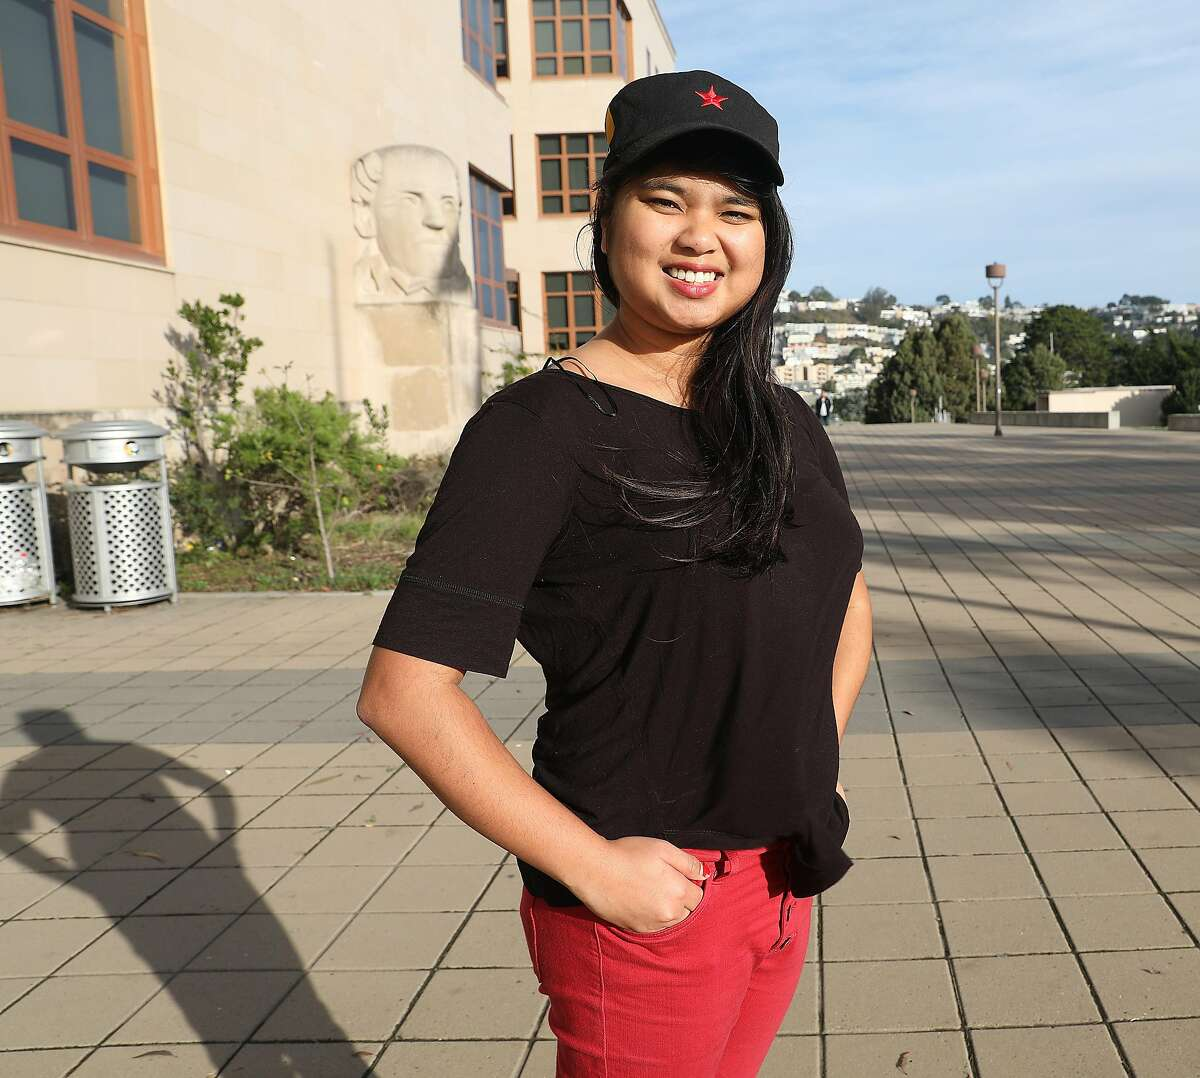 Win-Mon Kyi, a City College of San Francisco student and community organizer, has been working to try to get the Free City program extended. Click through to see the world's top 25 universities. >>>